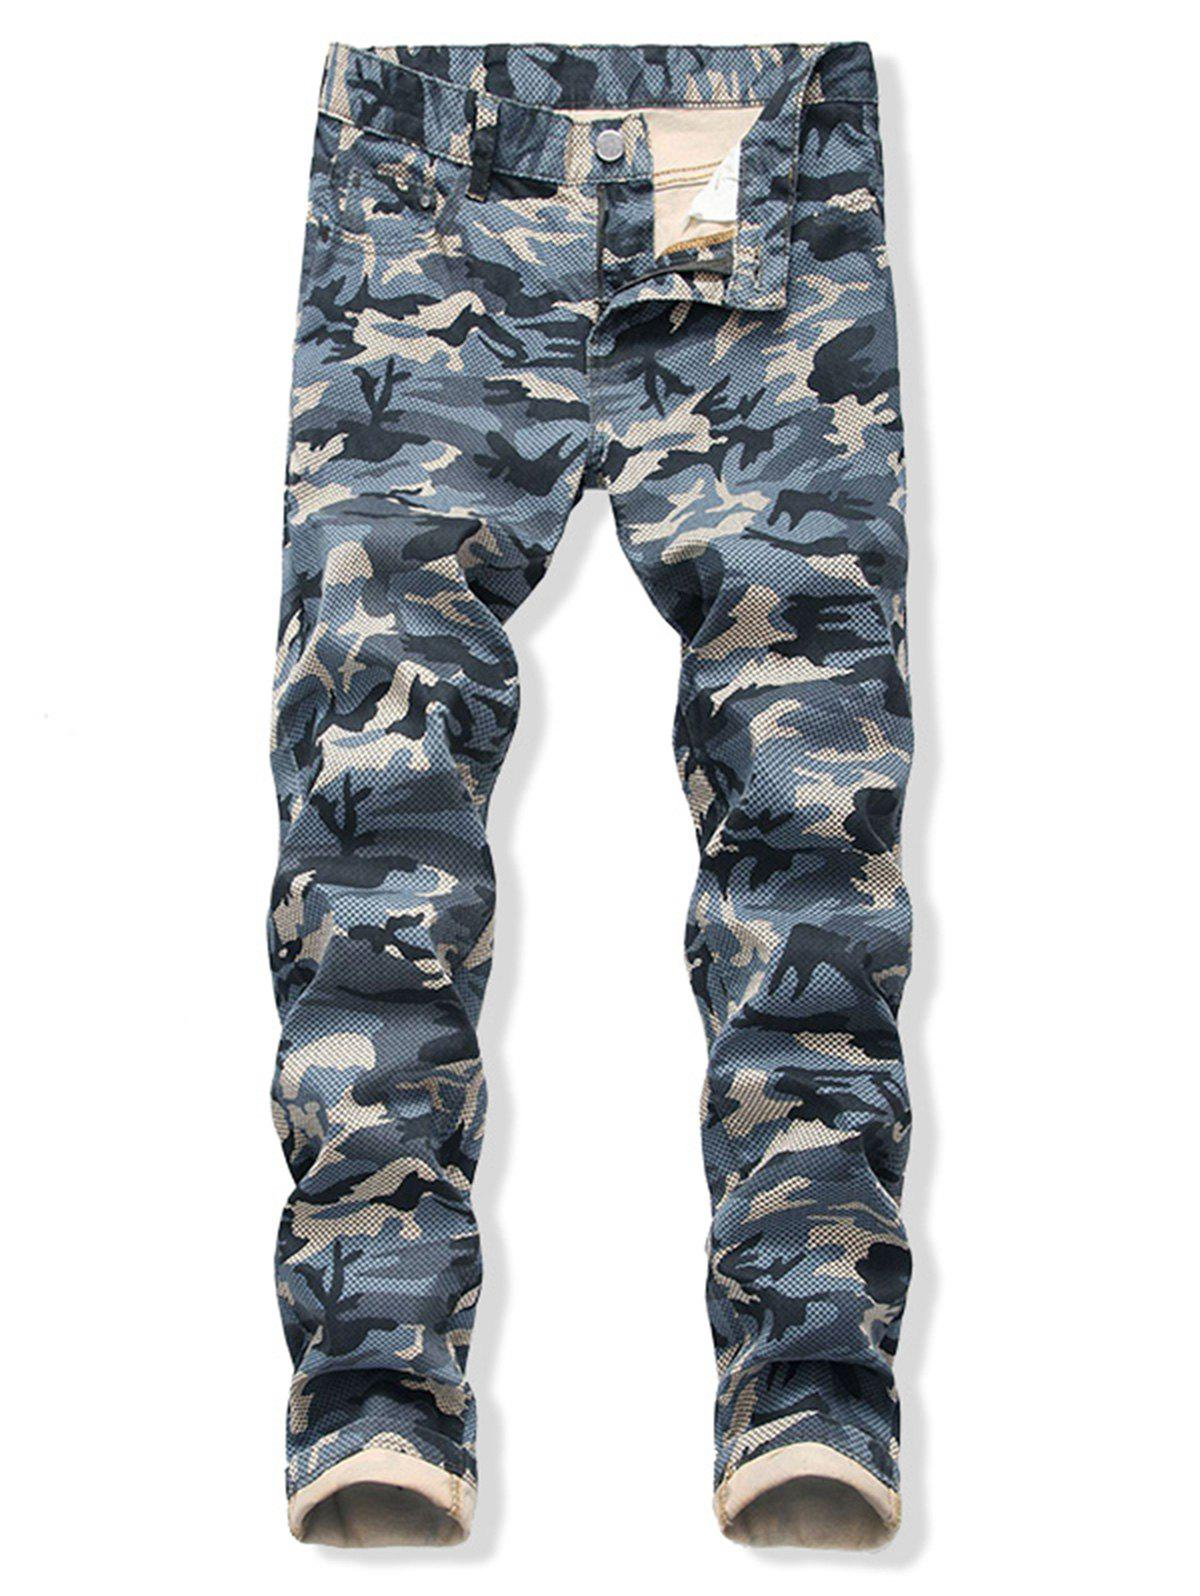 Camo Printed Zip Fly Cuffed Jeans - BLUE 40